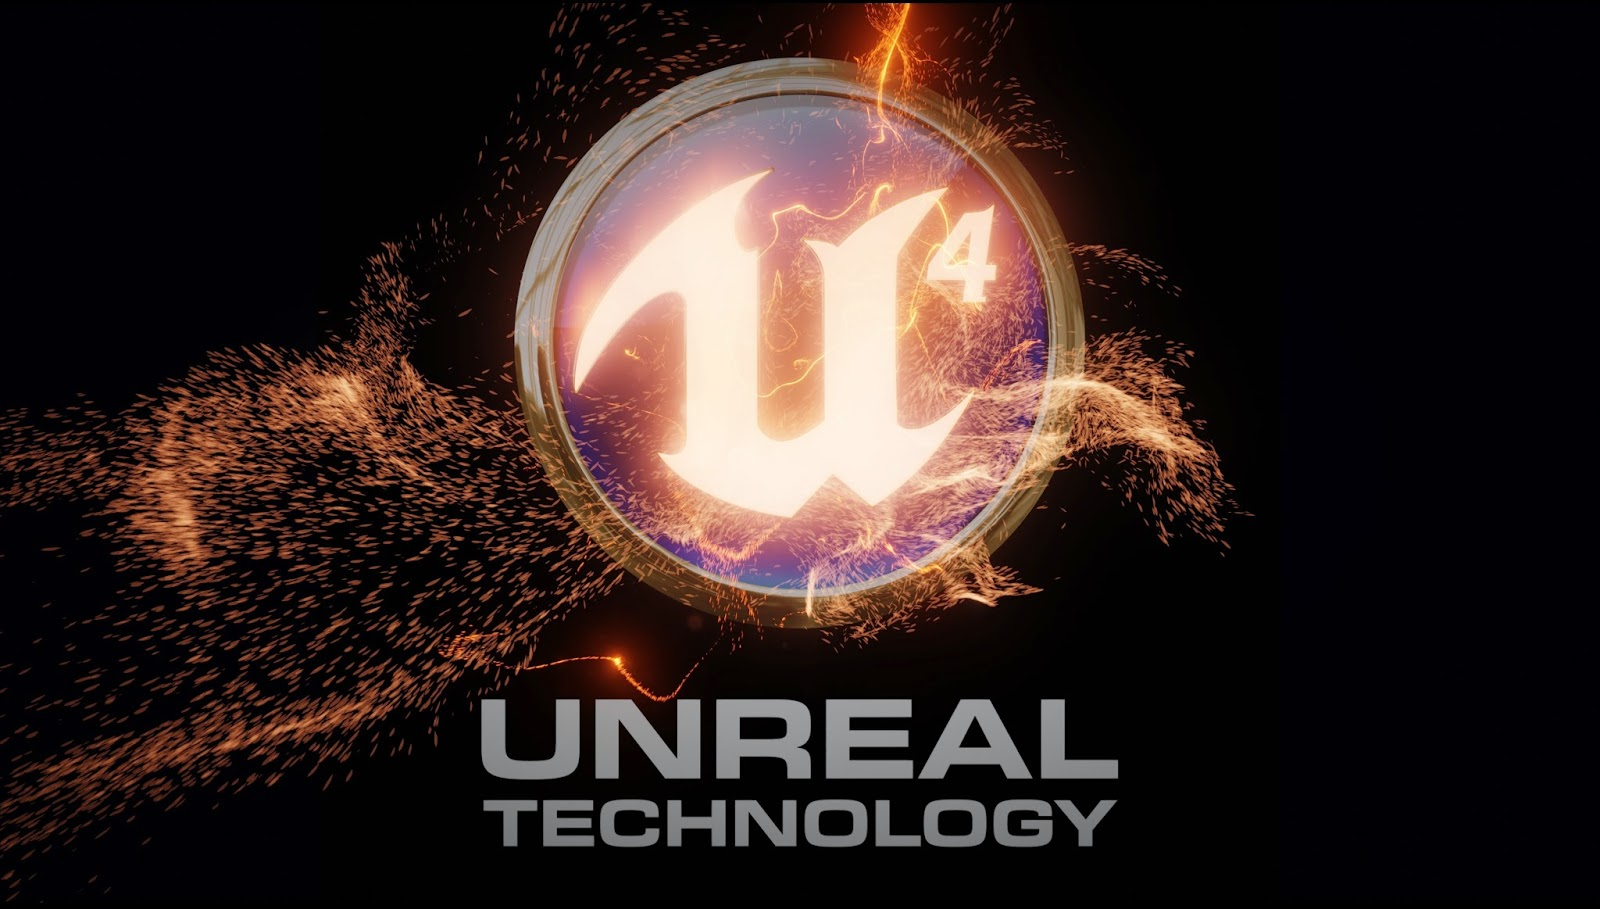 Download Unreal Engine 4 Torrent For Free ~ The Artista